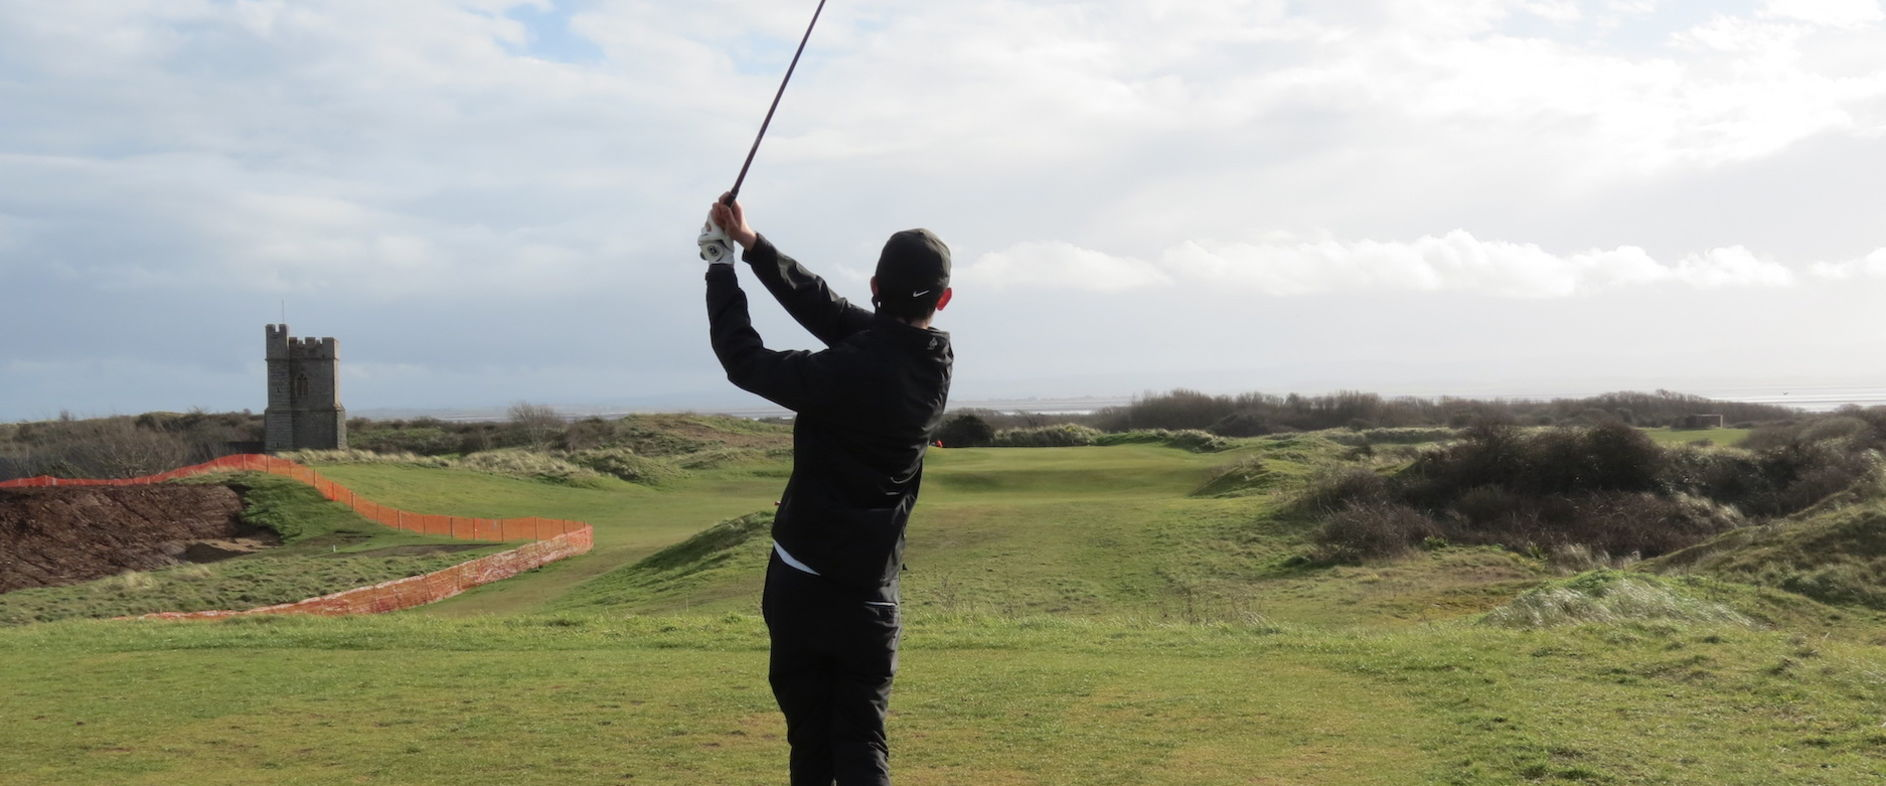 Tom Blizzard birdies the 205 yd 12th with a superb tee shot to 10ft - 15.3.20 Burnham & Berrow